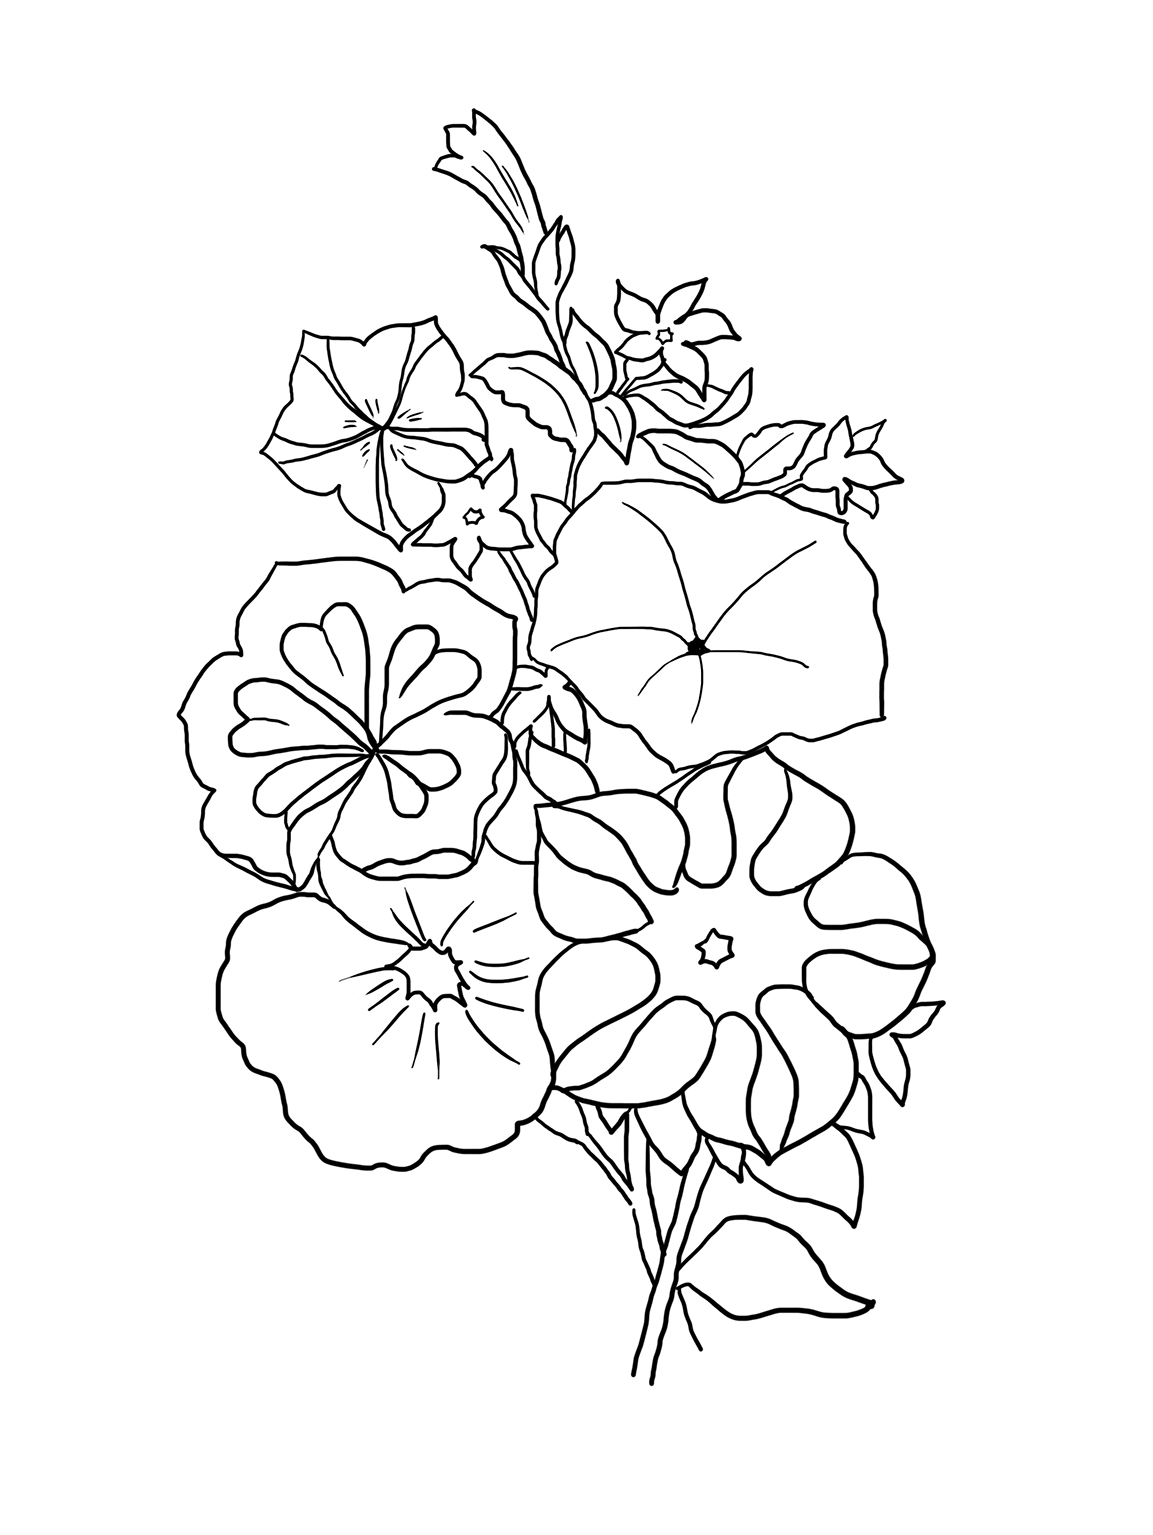 flower doodle coloring pages flower coloring pages doodle art alley coloring doodle flower pages